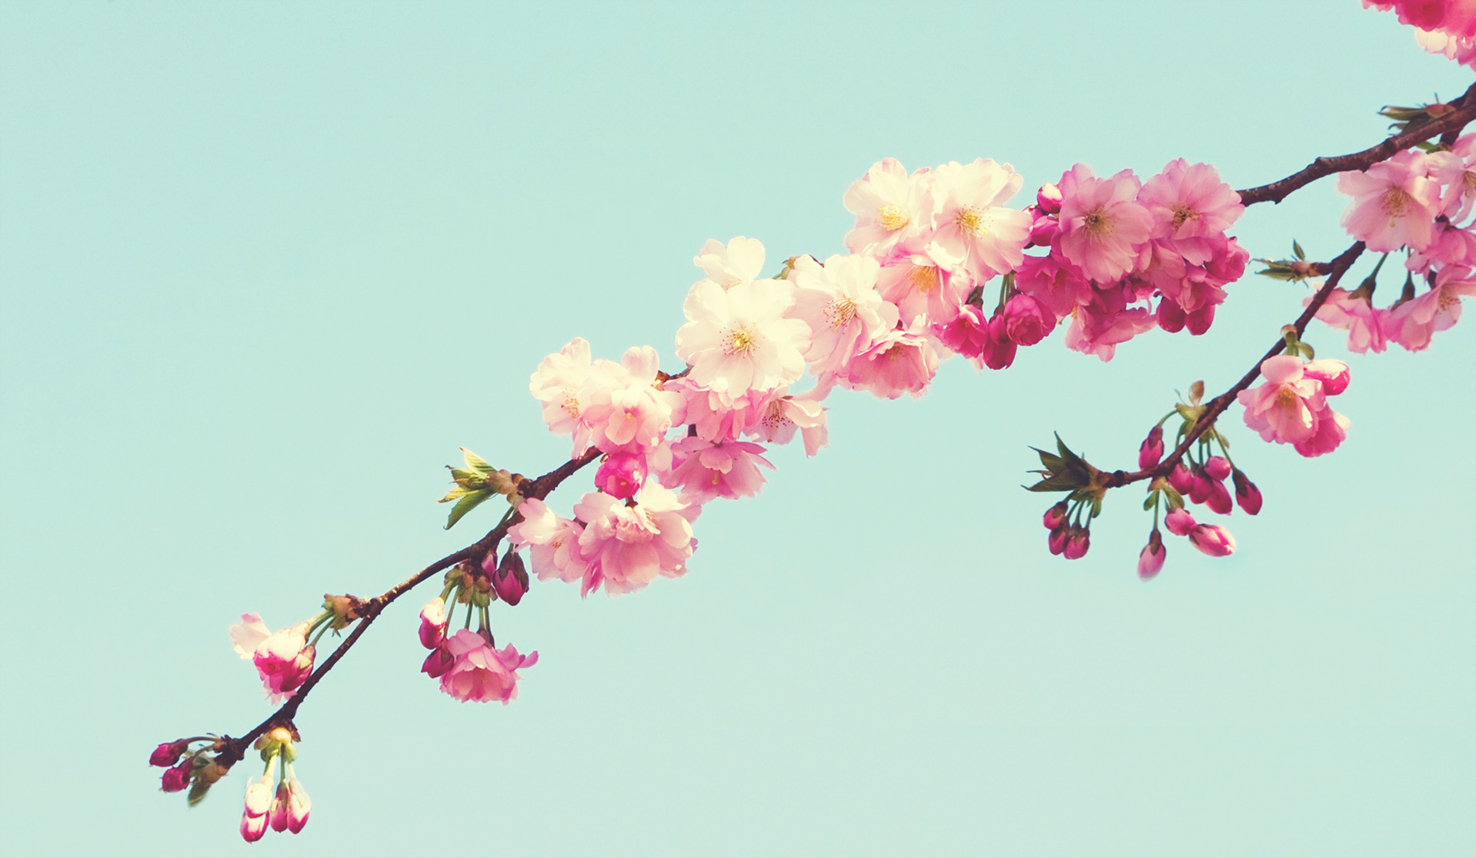 pink cherry blossoms on branch